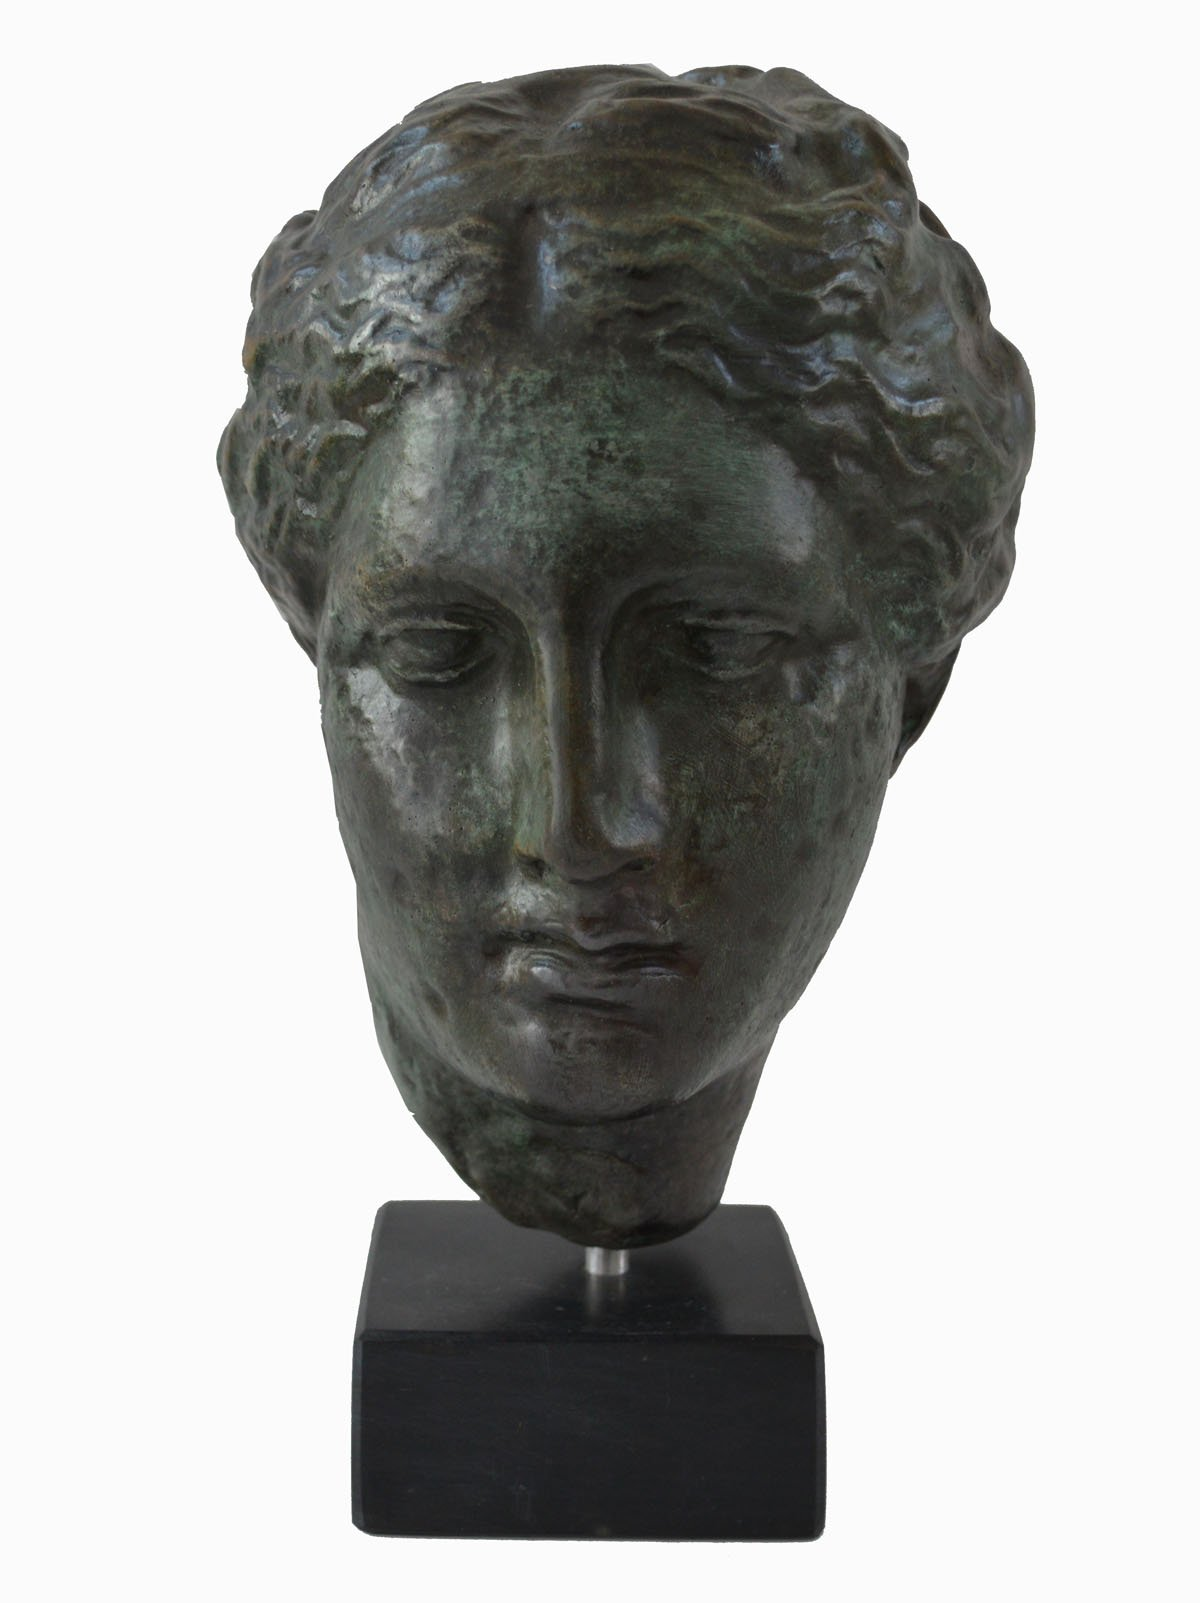 Hygieia bust with bronze color effect - Ancient Greek Goddess of health Hygeia - museum replica by Estia Creations (Image #1)